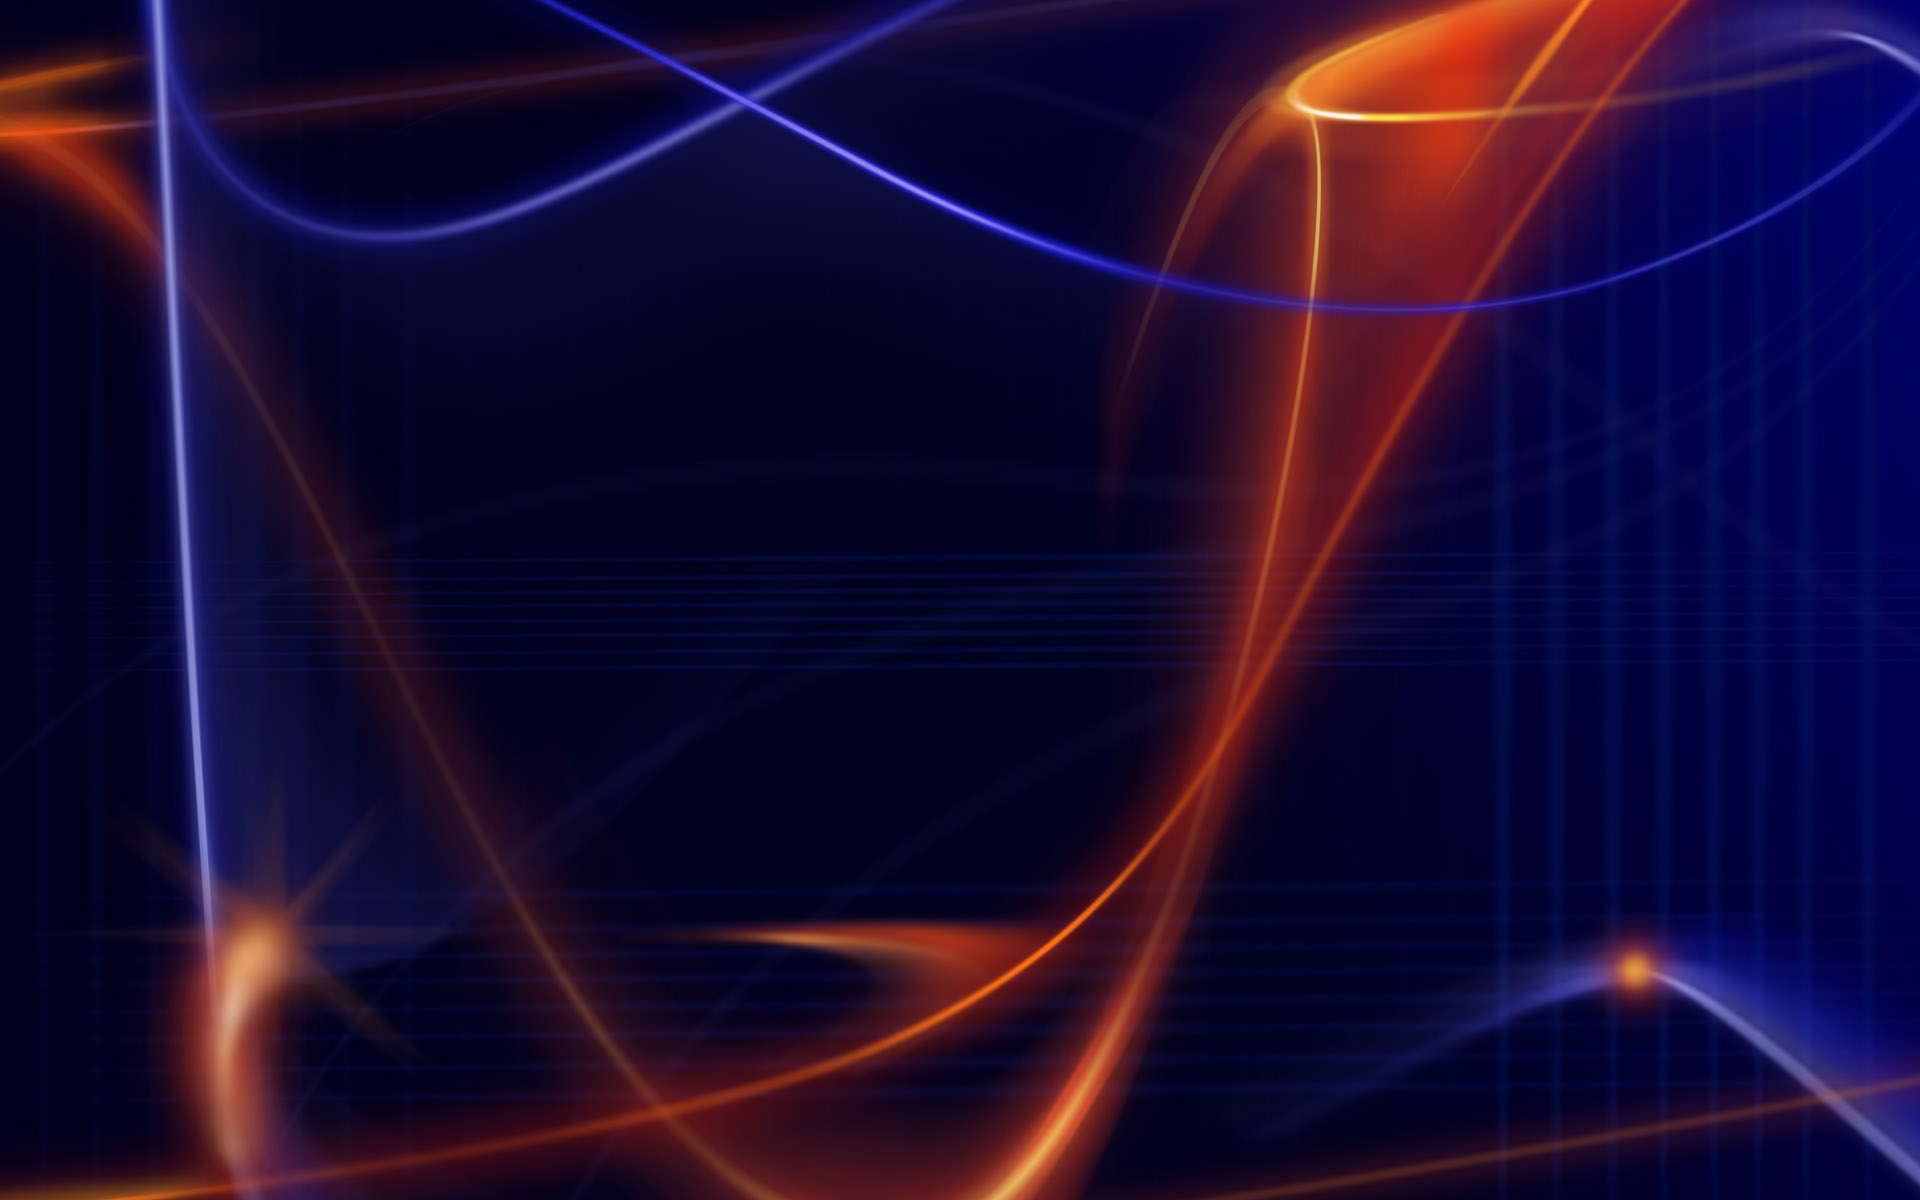 Colorful background of high-definition 22105